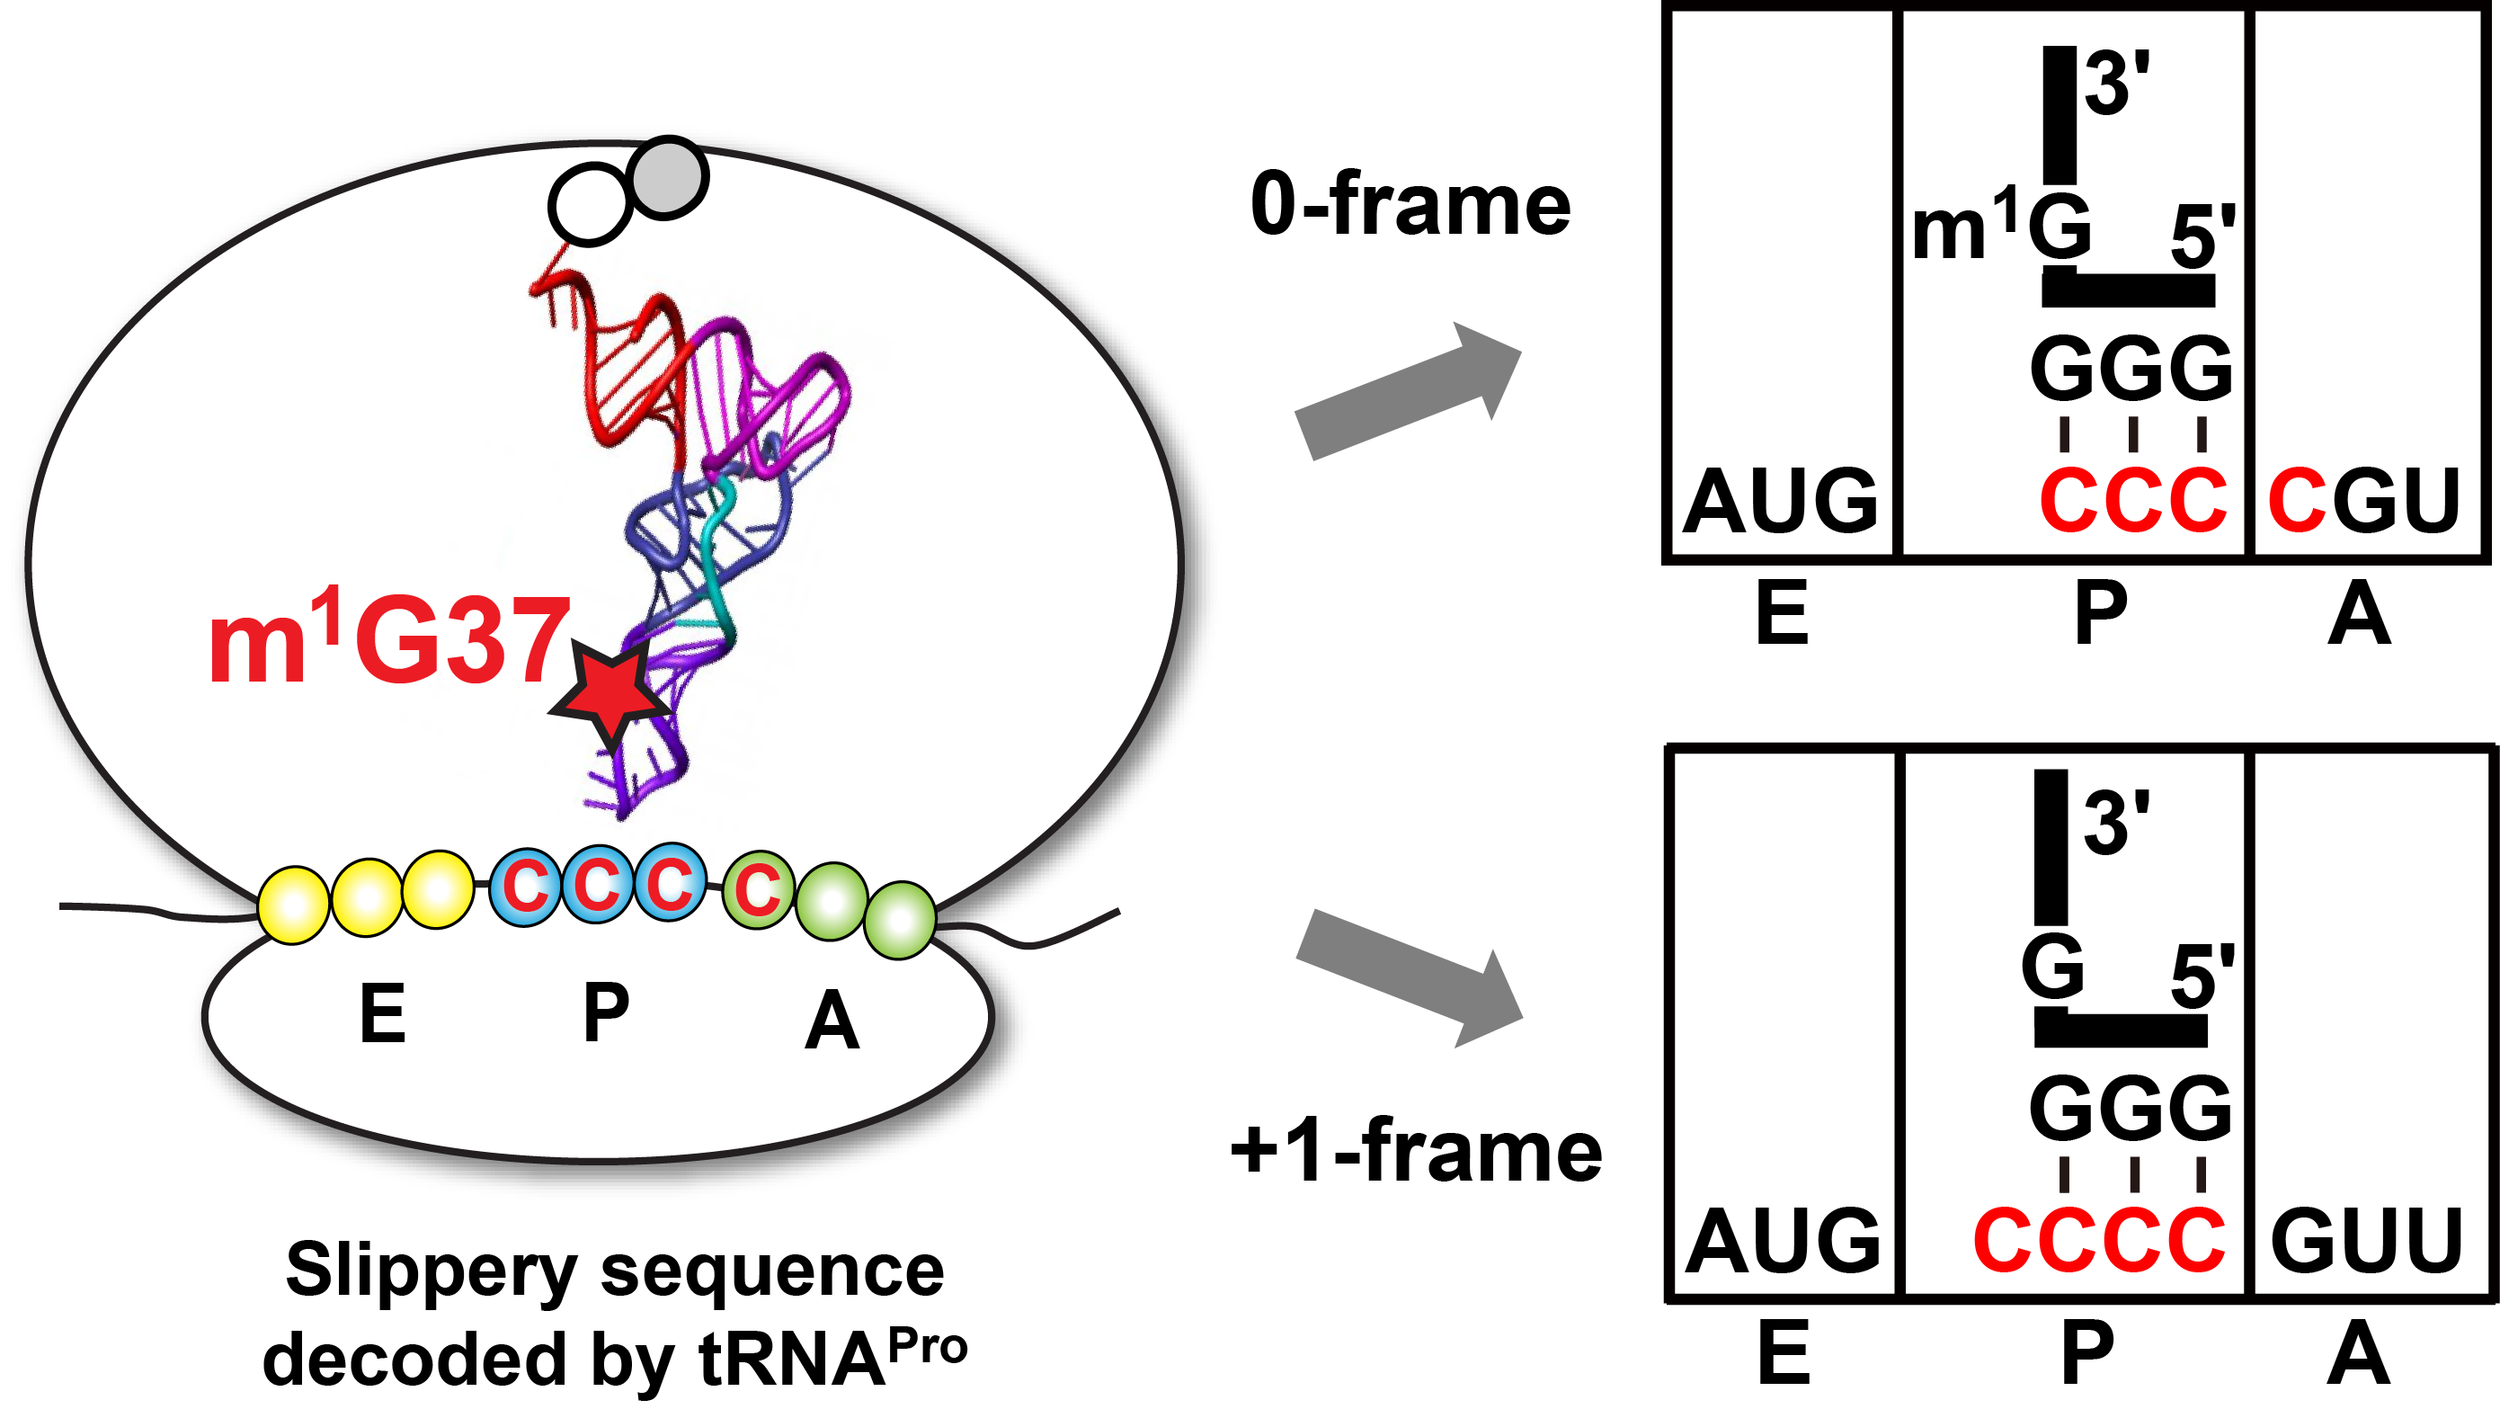 Figure 6: m1G37 inhibits ribosomal +1-frameshifts